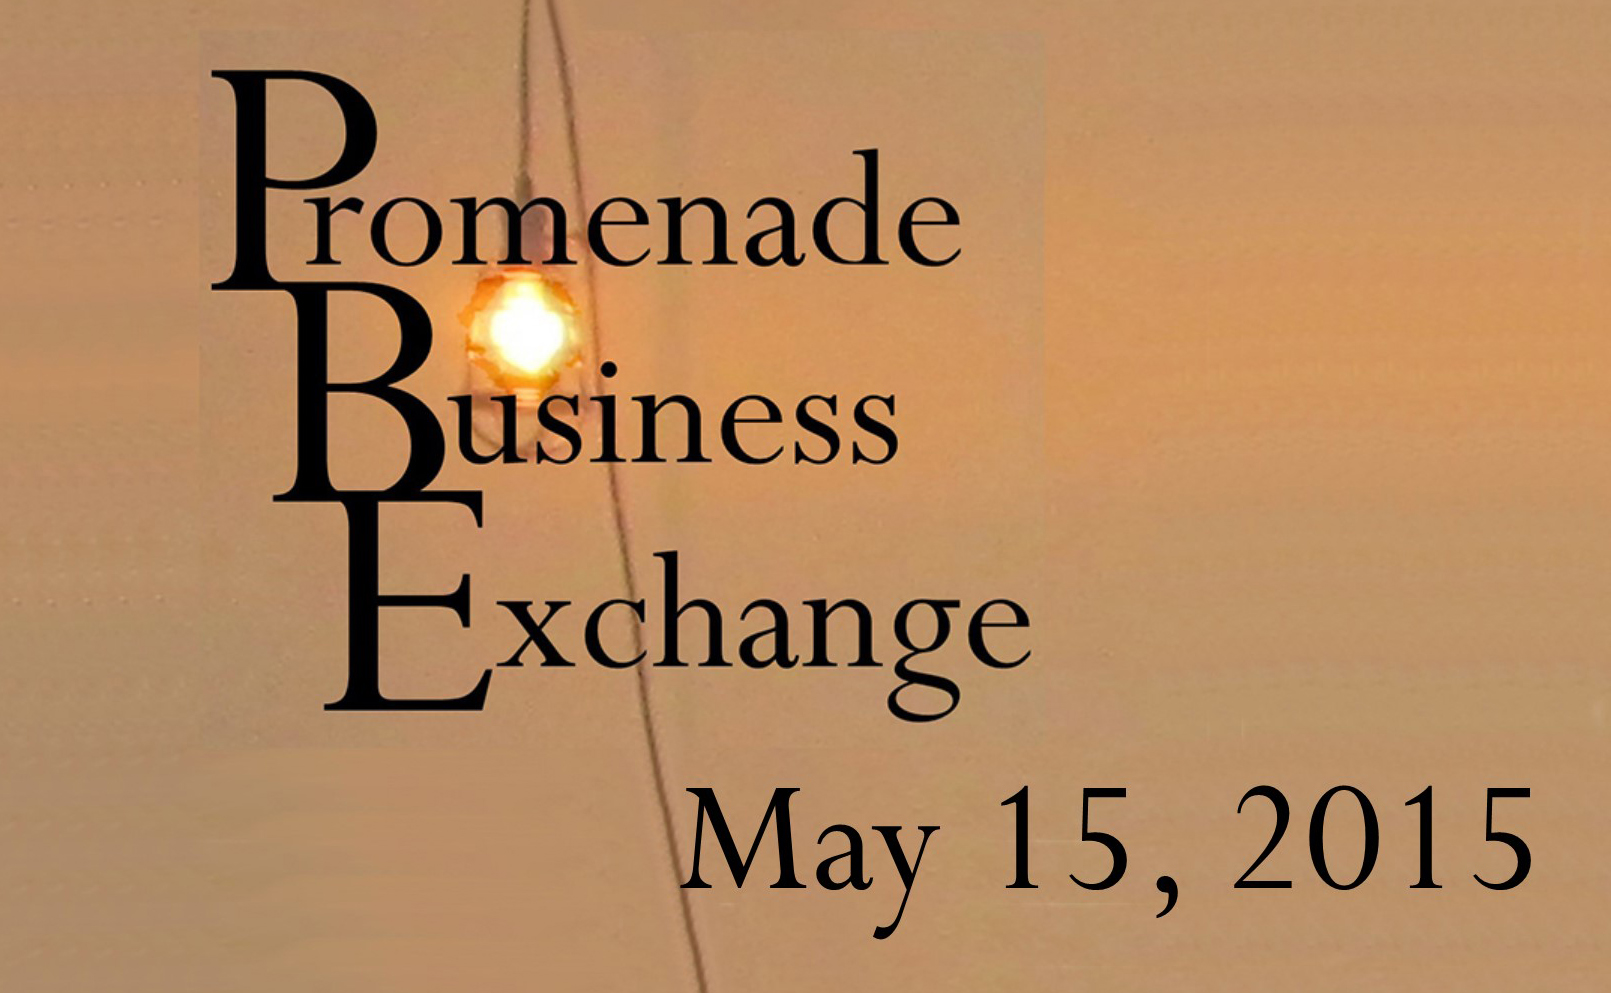 Promenade Business Exchange May 15, 2015